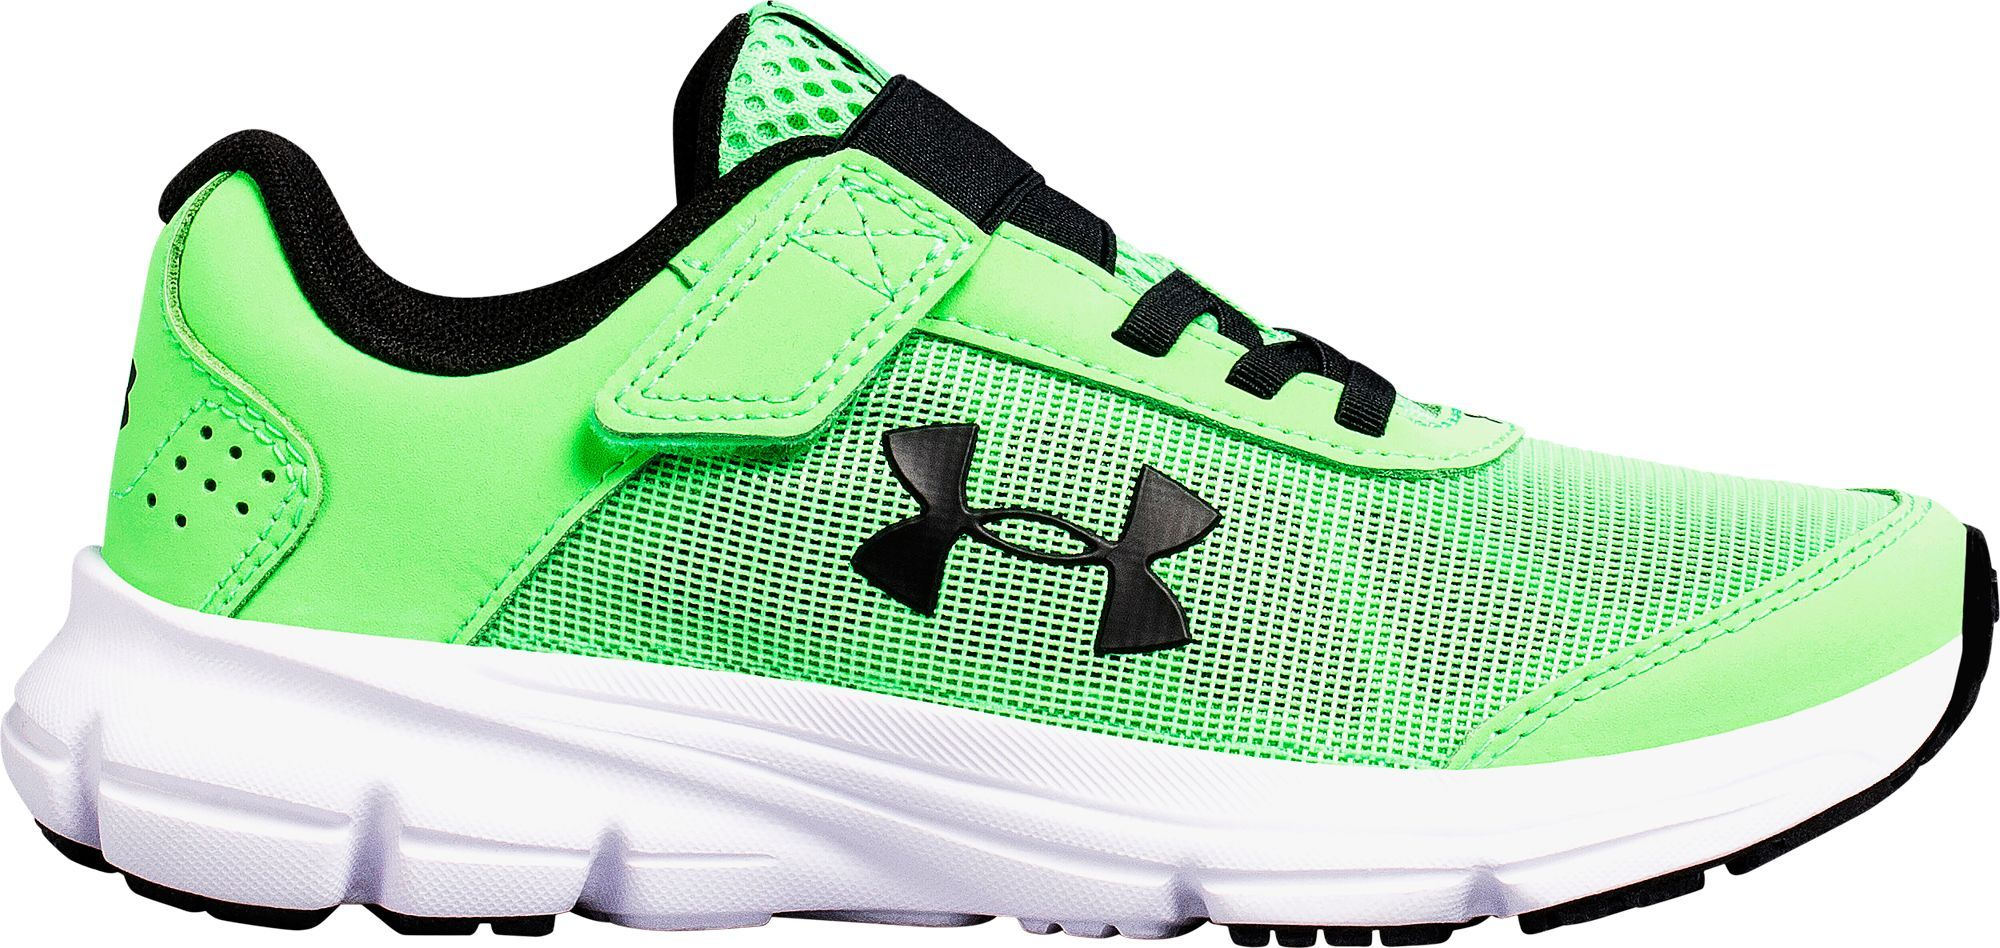 online retailer f9213 710fa Under Armour Kids' Preschool Rave 2 AC Running Shoes, Boy's, Size: 1.0,  Green